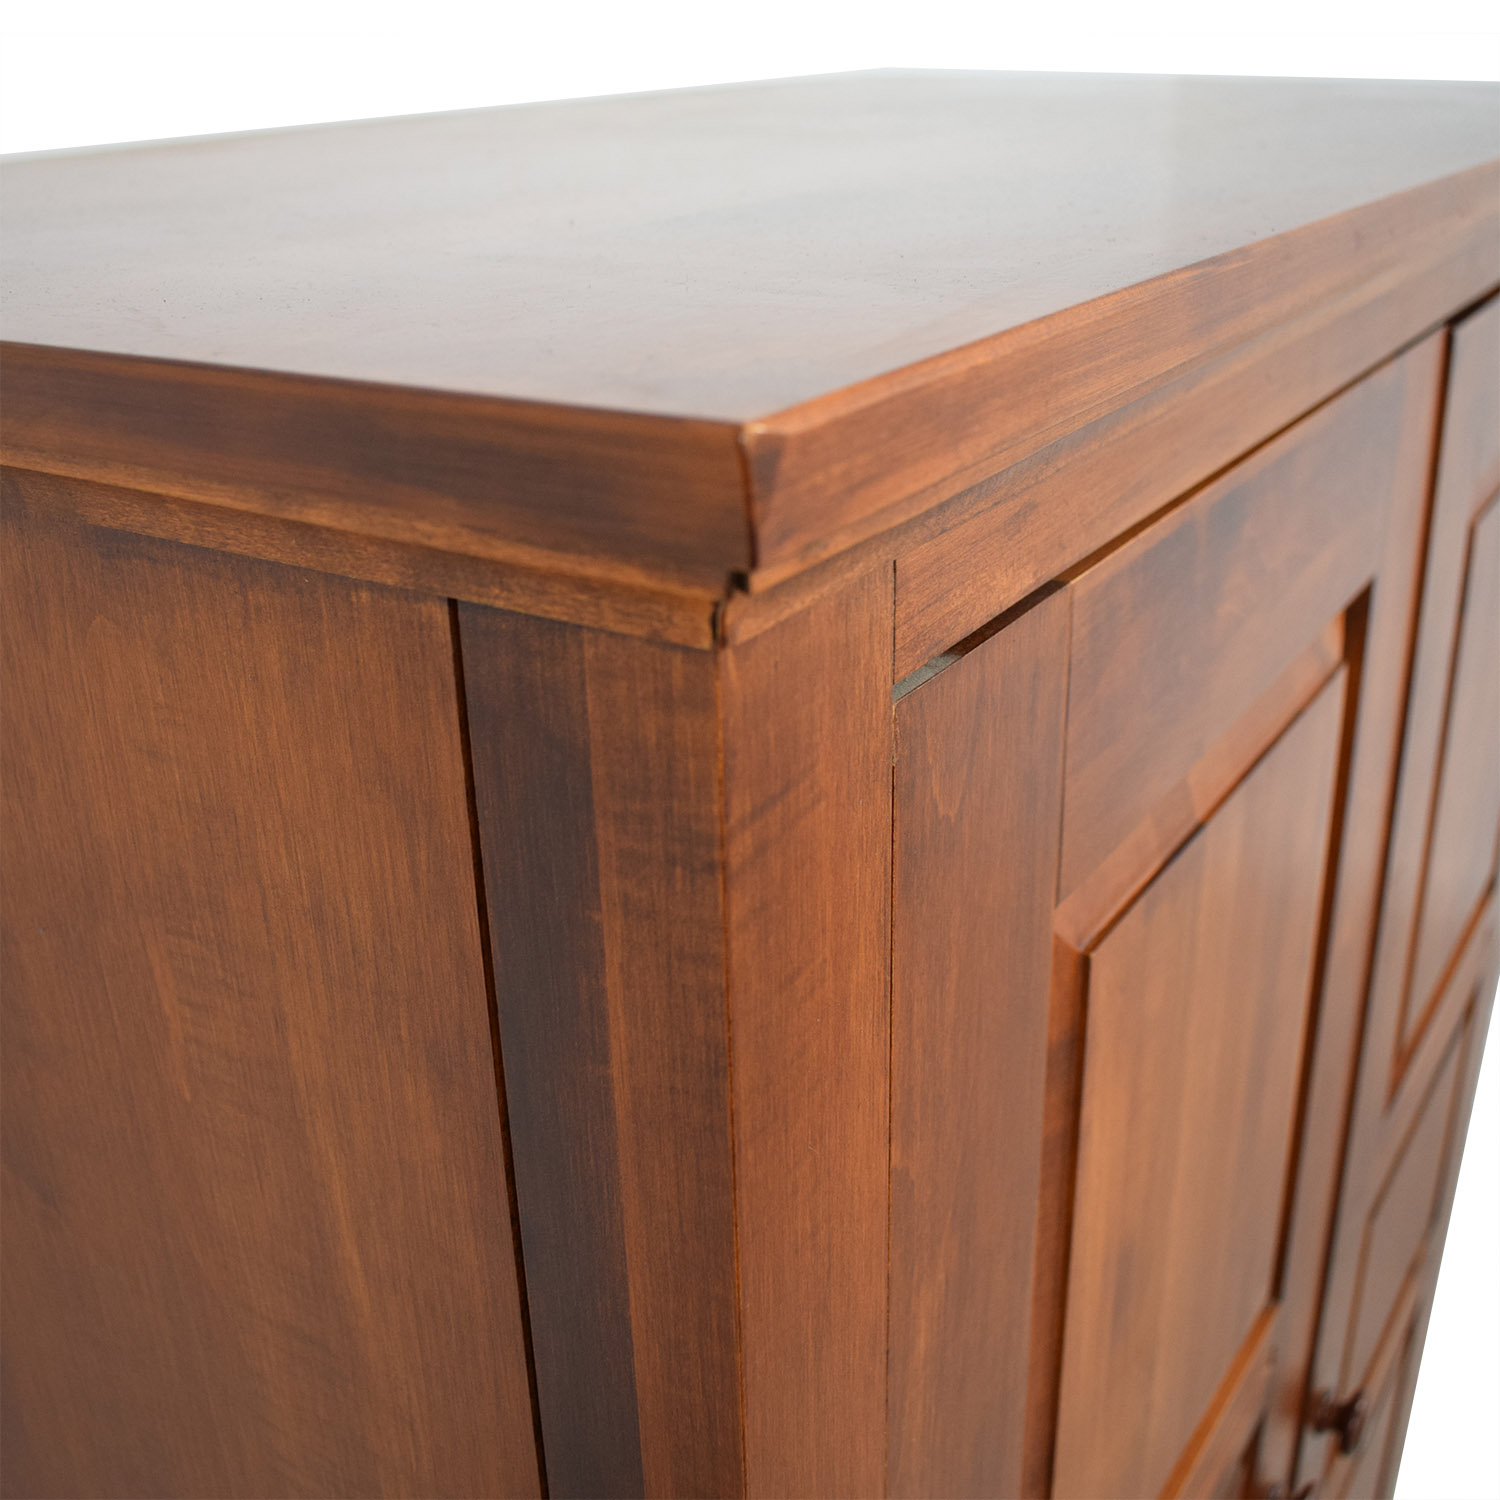 Ethan Allen Country Colors Coffee Table: Ethan Allen Ethan Allen Country Colors